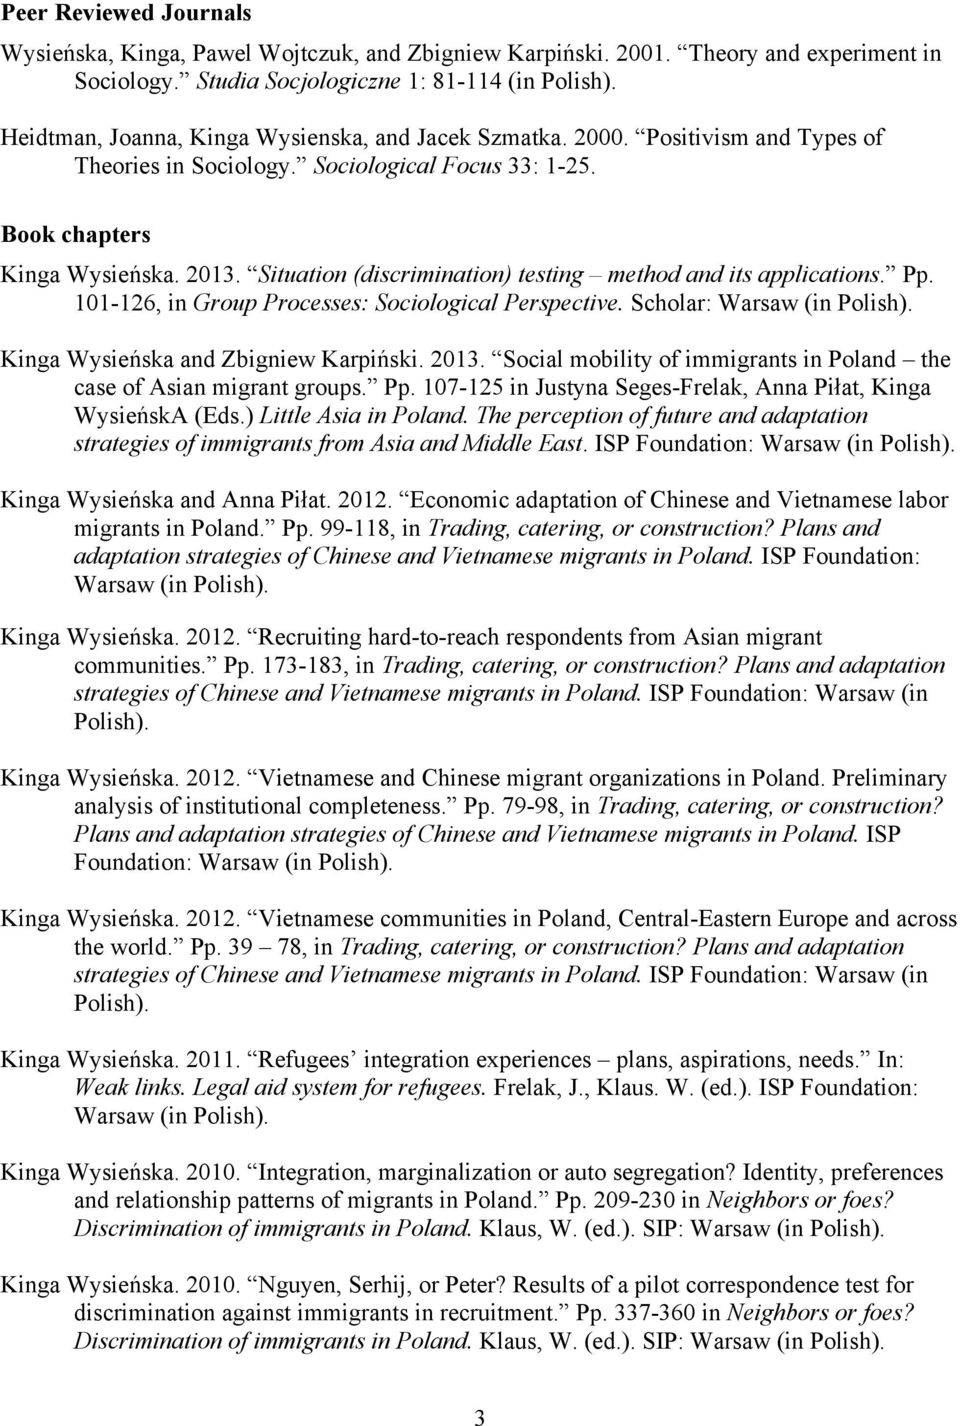 Situation (discrimination) testing method and its applications. Pp. 101-126, in Group Processes: Sociological Perspective. Scholar: Warsaw (in Polish). Kinga Wysieńska and Zbigniew Karpiński. 2013.